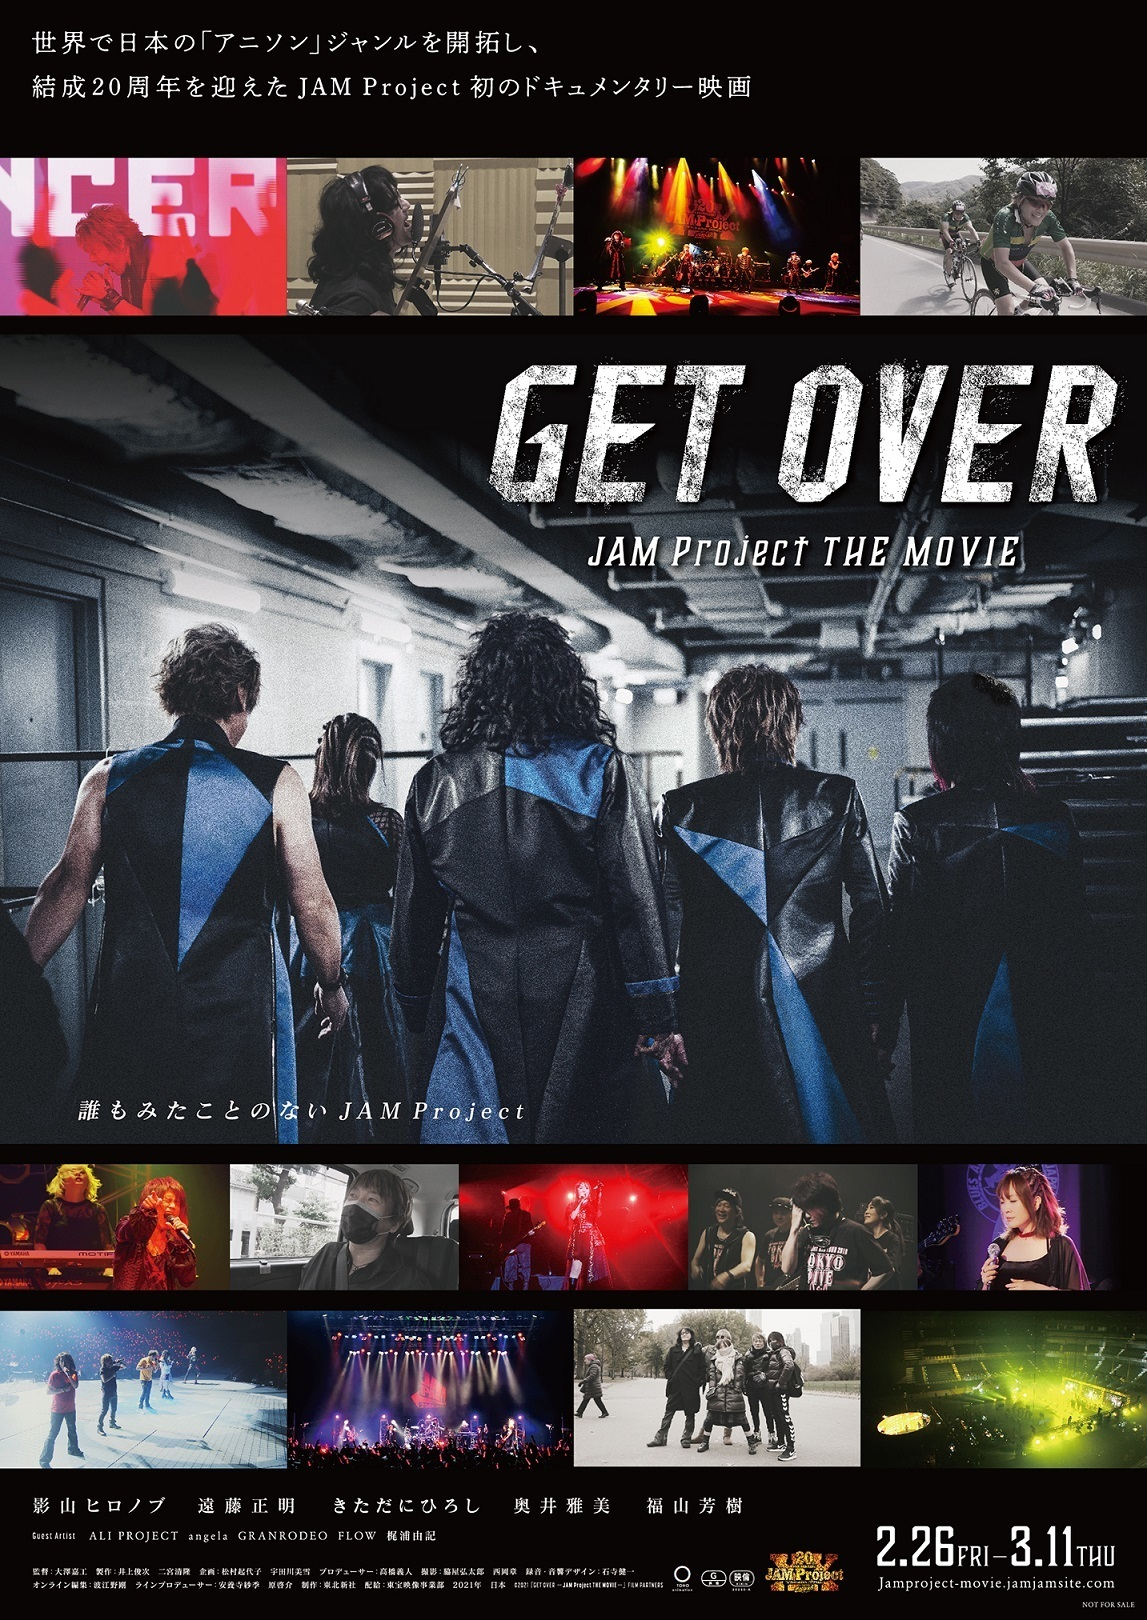 『GET OVER -JAM Project THE MOVIE-』 (C)2021「GET OVER -JAM Project THE MOVIE-」FILM PARTNERS